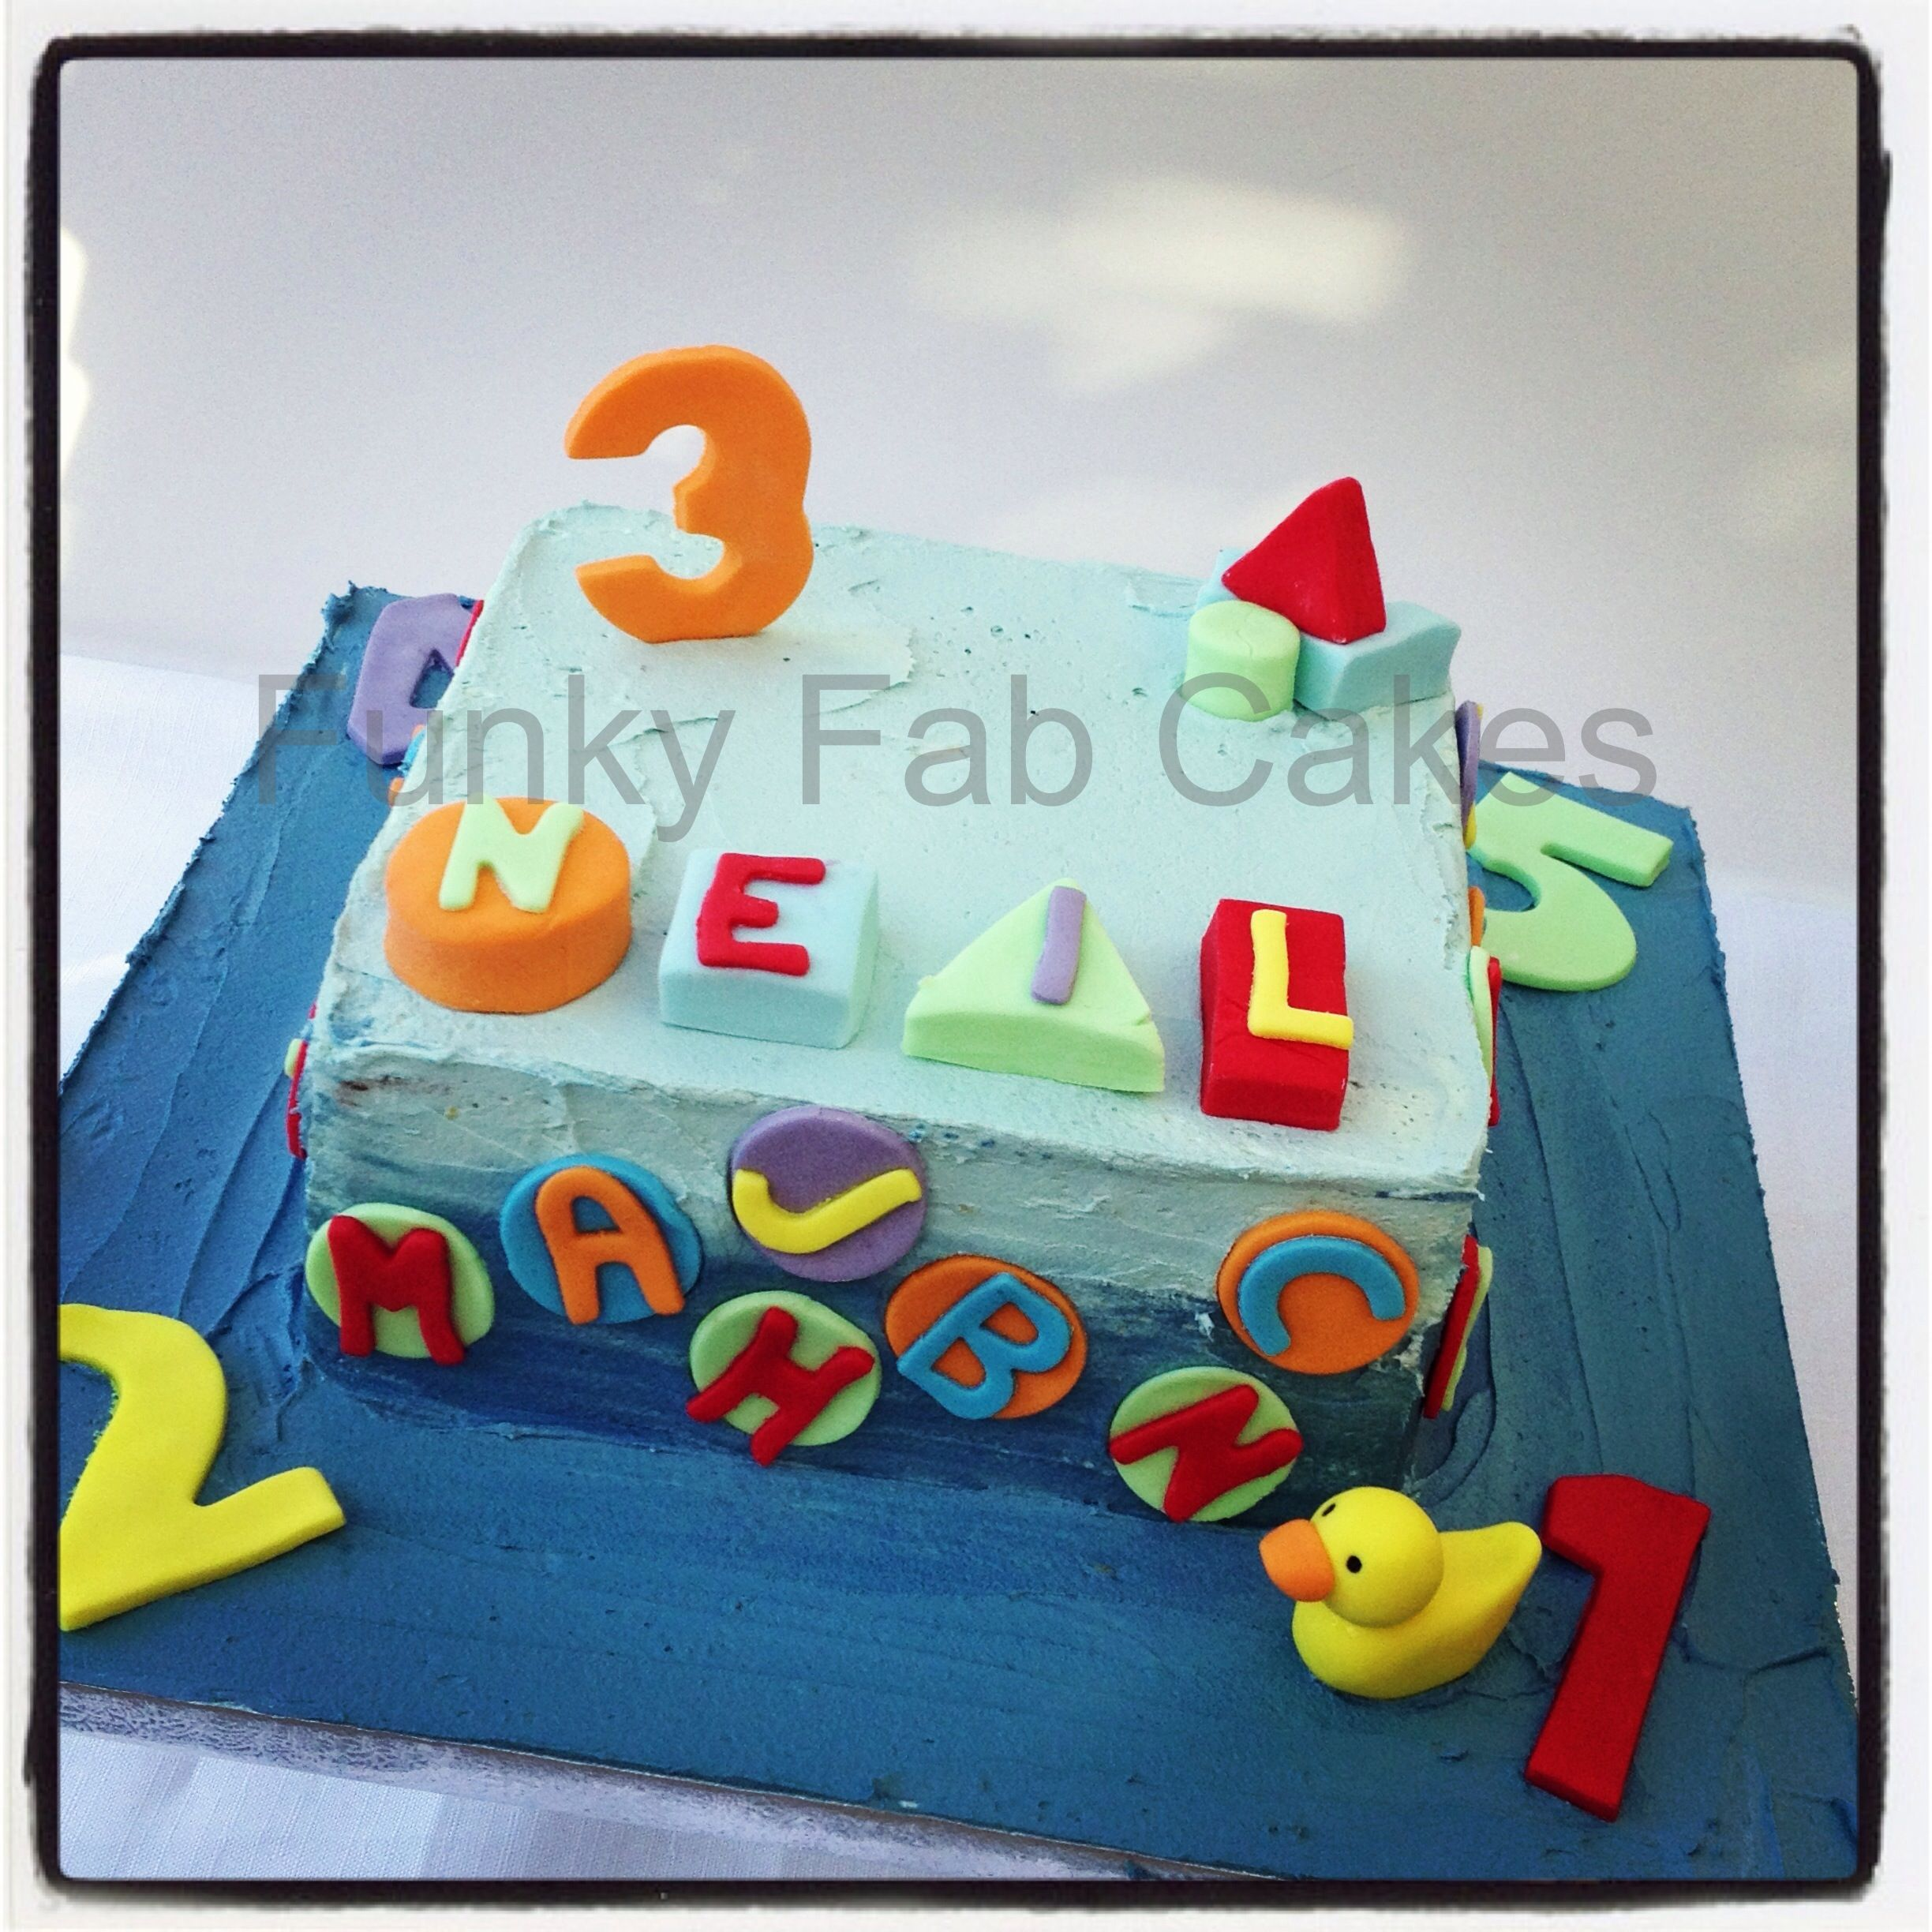 Buttercream finished cake with shapes, numbers and shapes